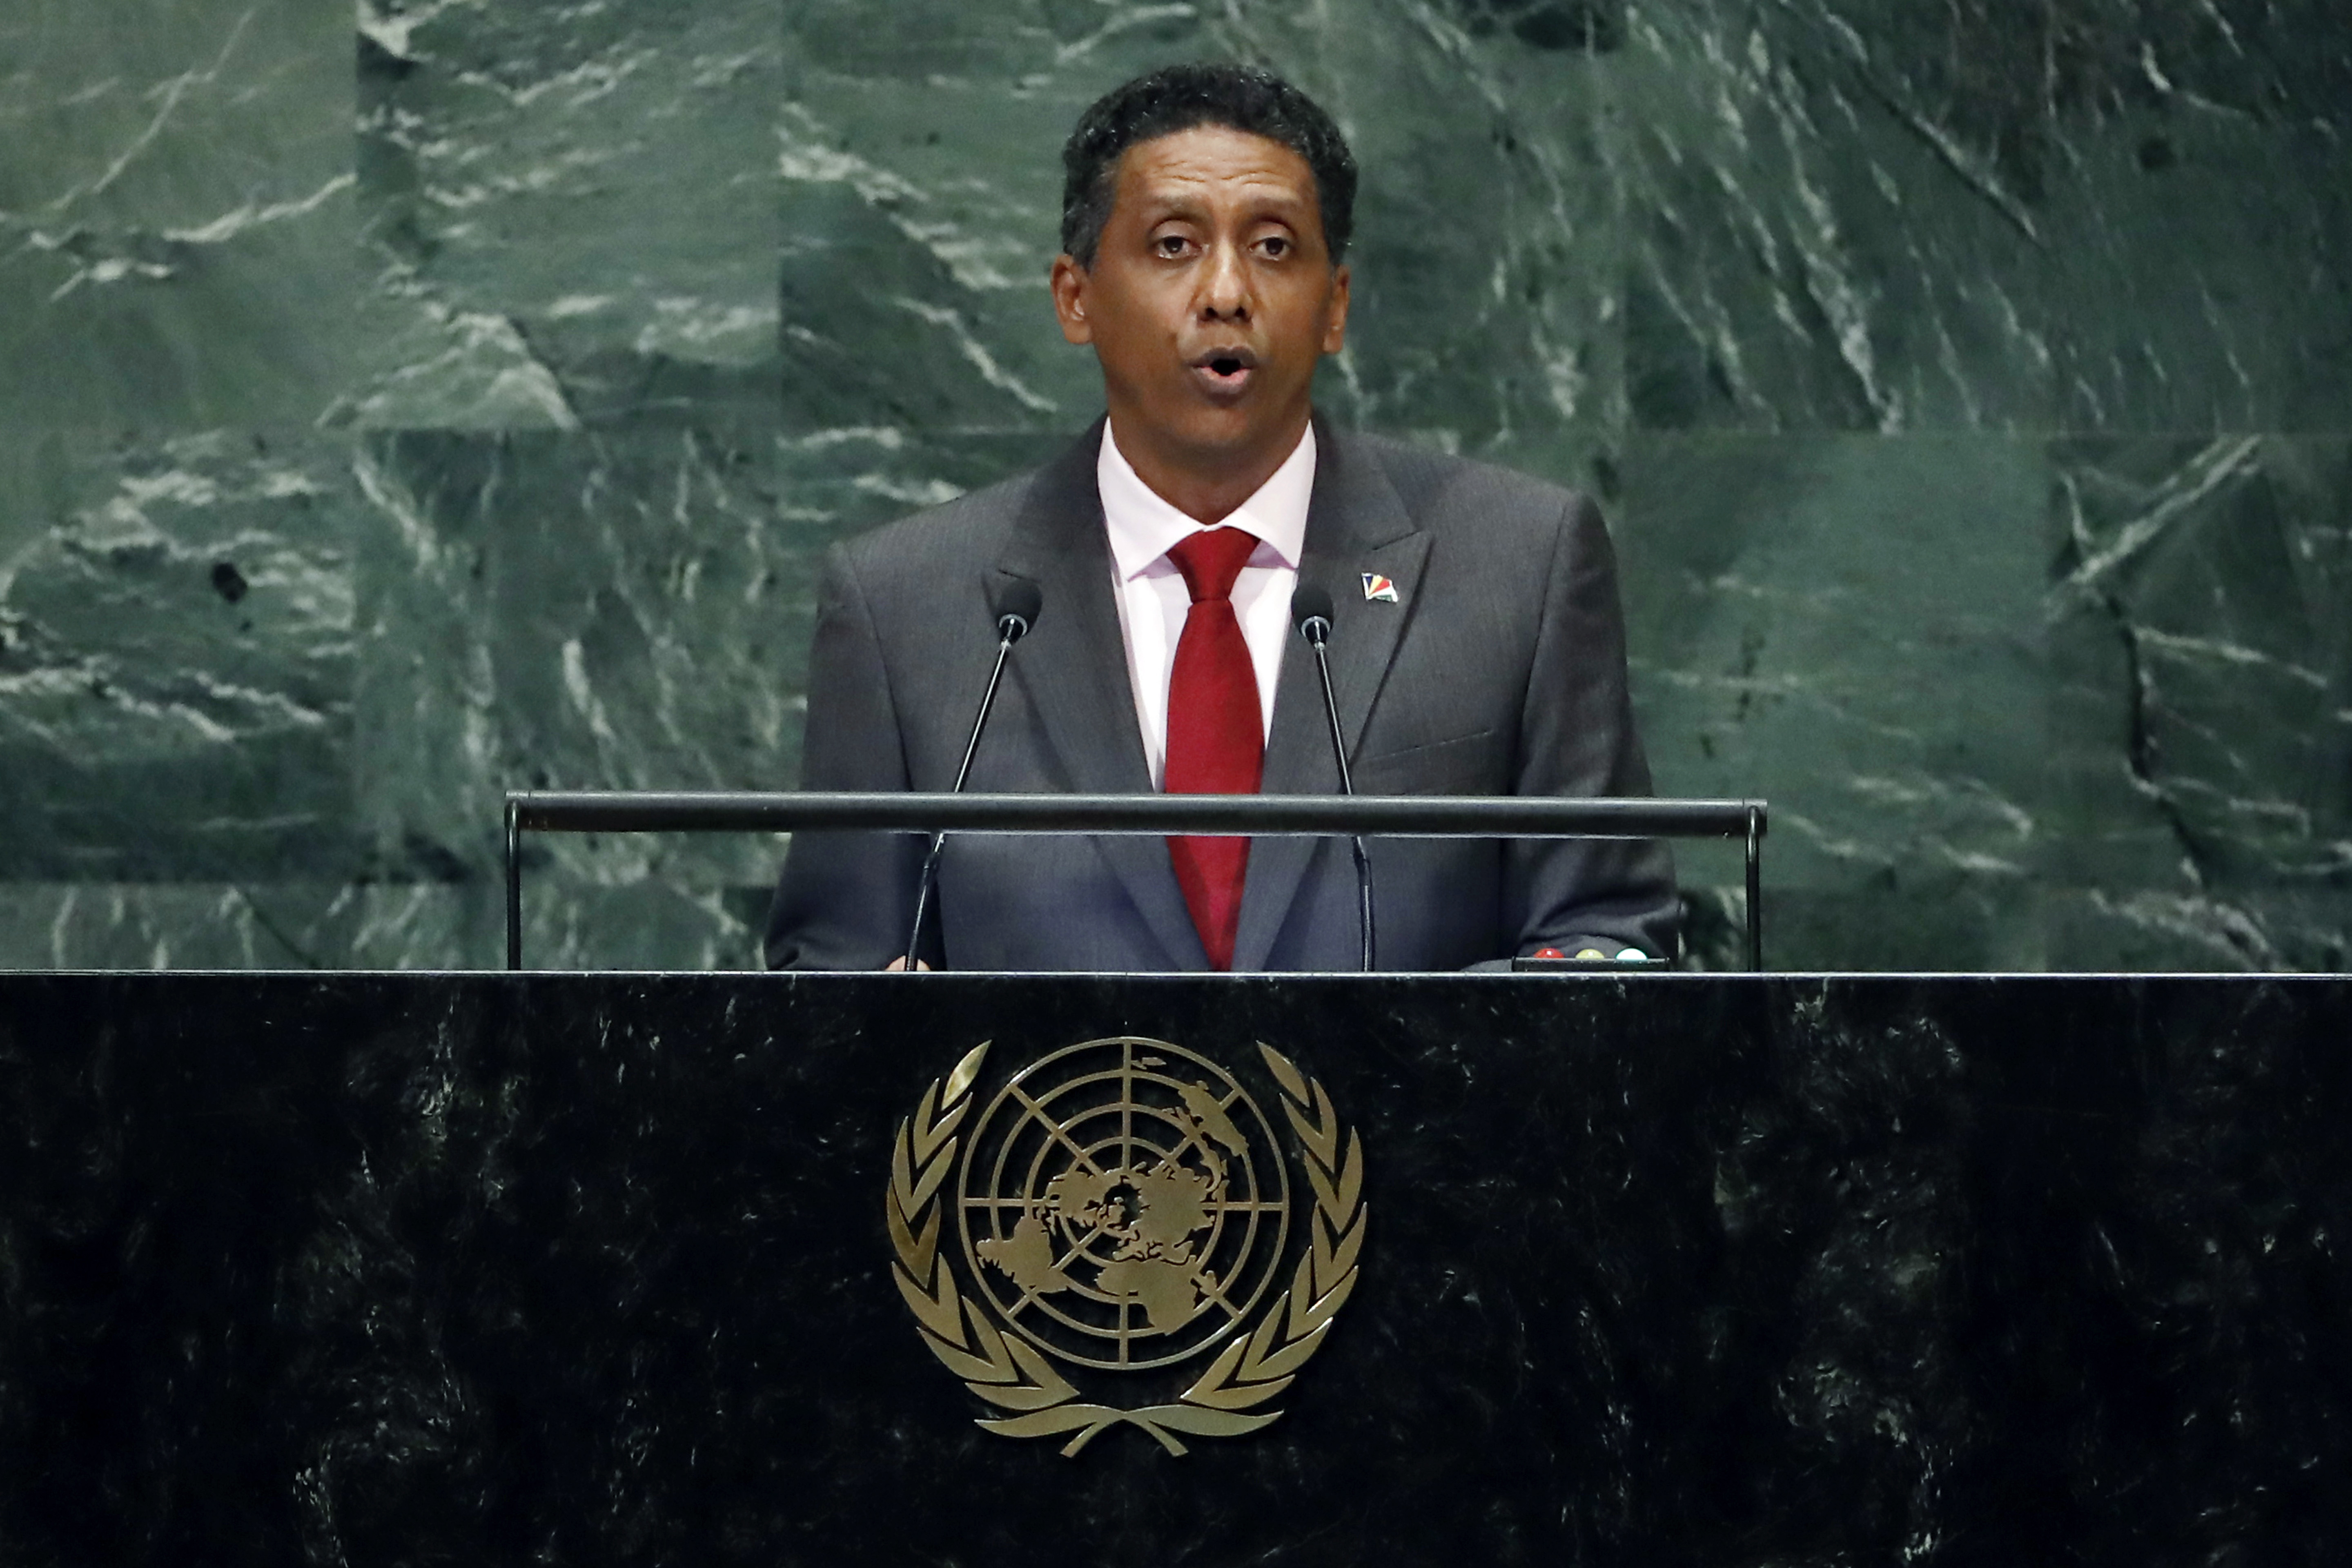 Seychelles President Danny Faure addresses the 73rd session of the United Nations General Assembly, at U.N. headquarters, Sept. 25, 2018.